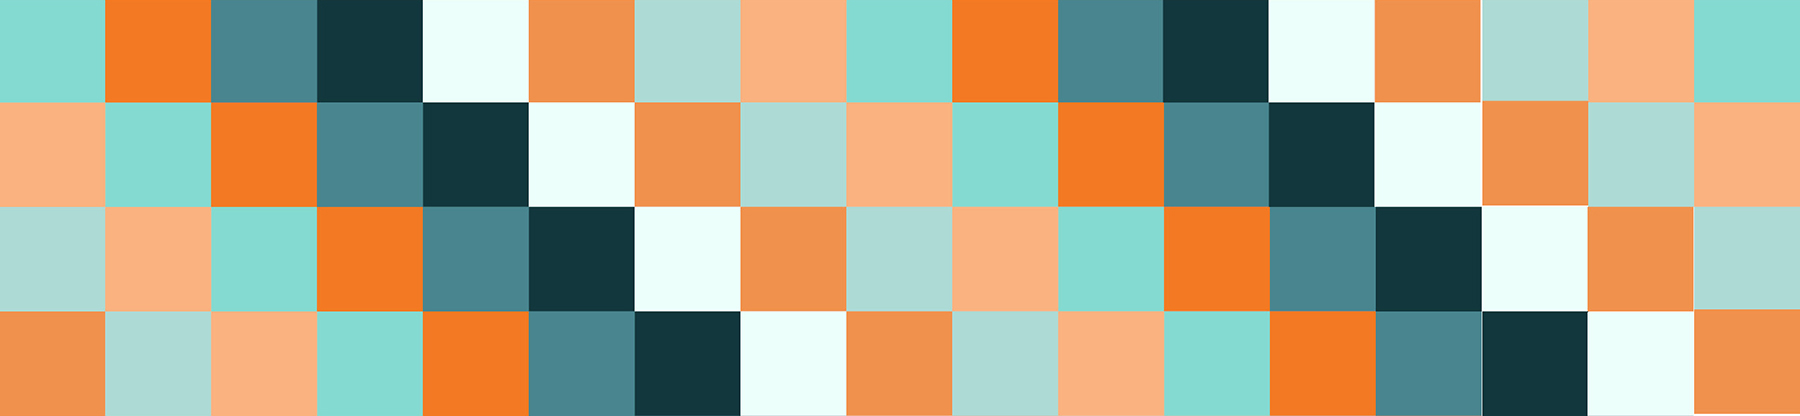 pattern-for-web-3_387